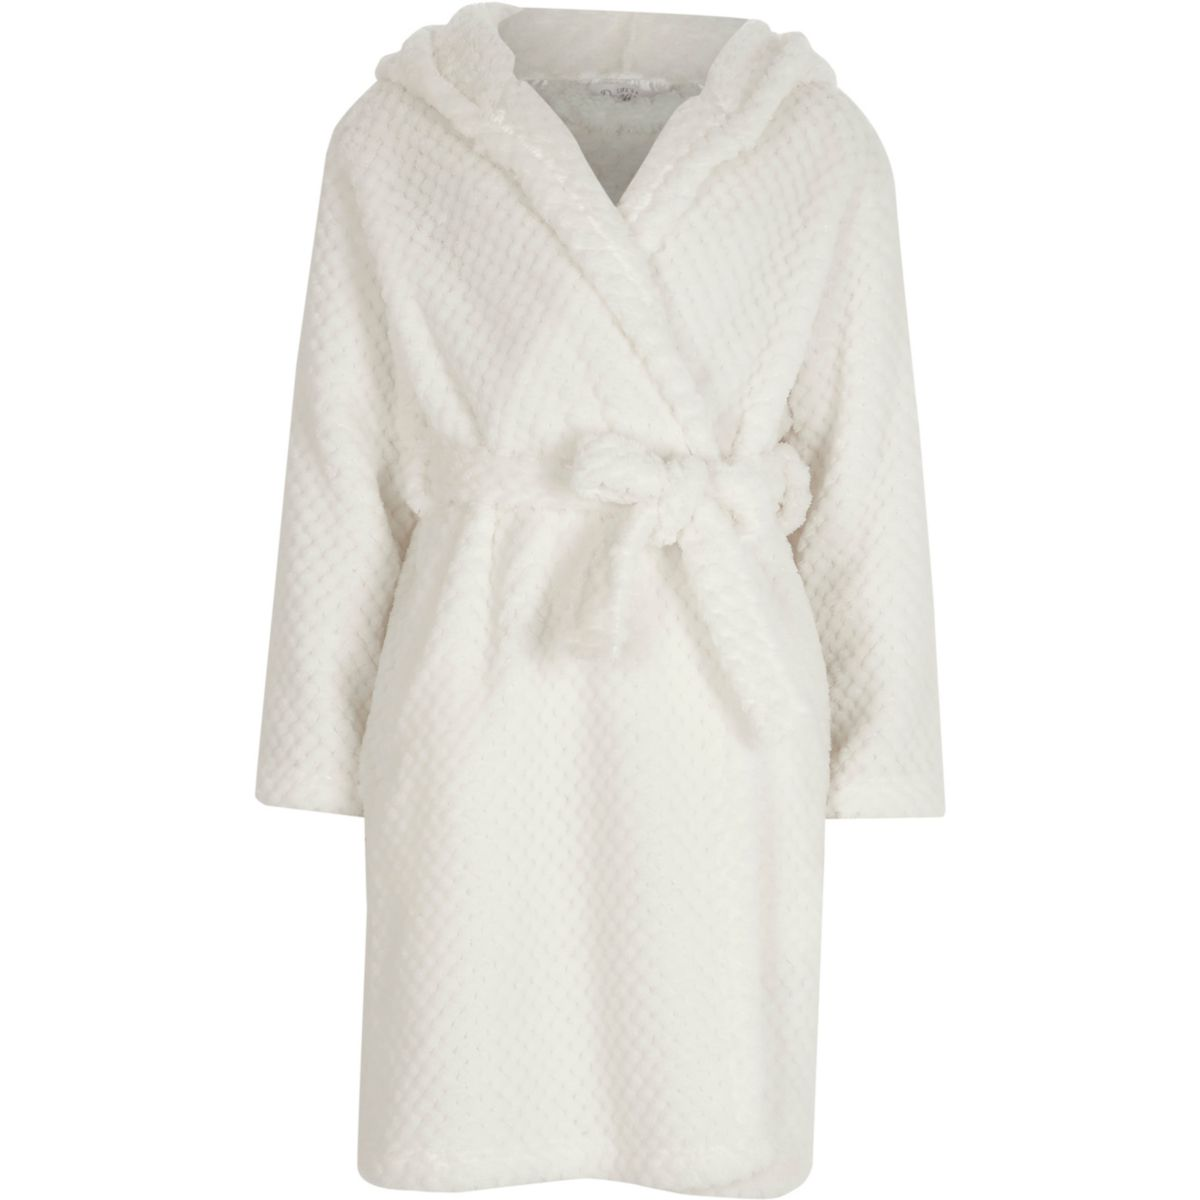 Girls cream quilted fluffy dressing gown - Pyjamas & Underwear ... : quilted dressing gown - Adamdwight.com